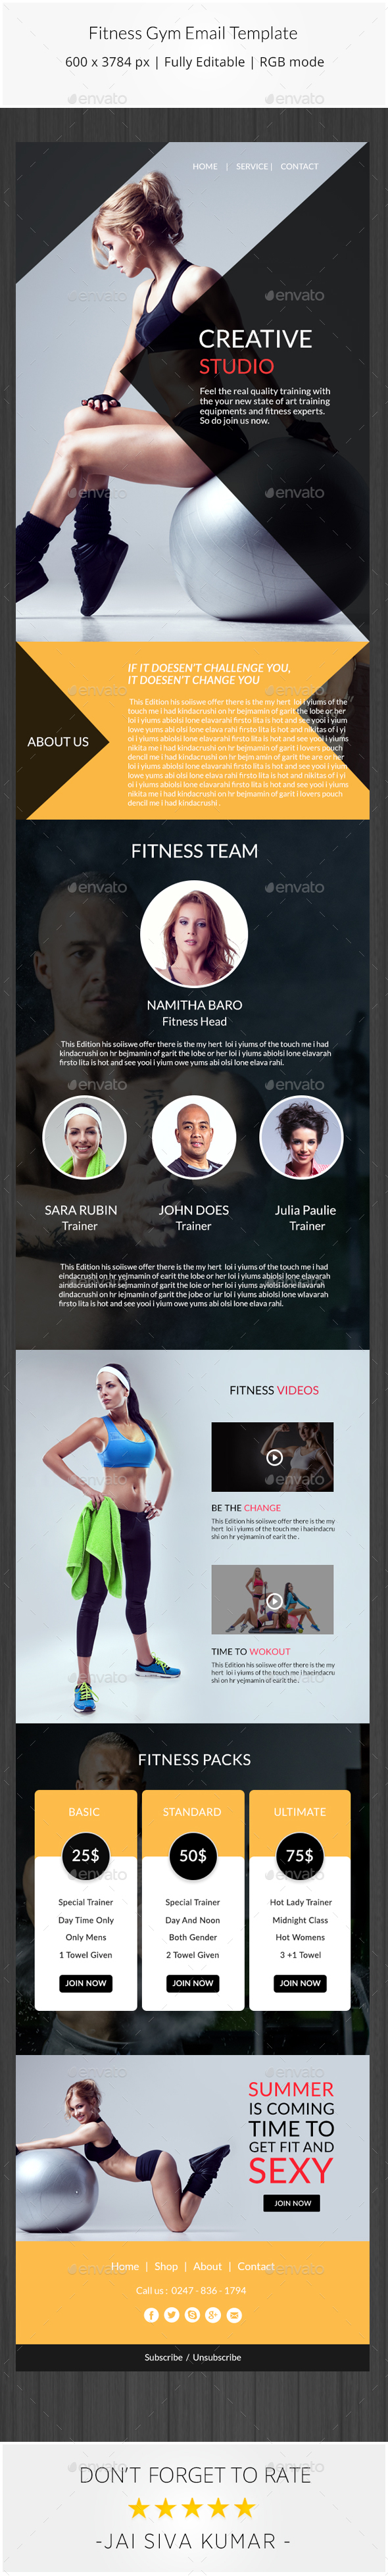 fitness gym email template by jaisivakumar graphicriver